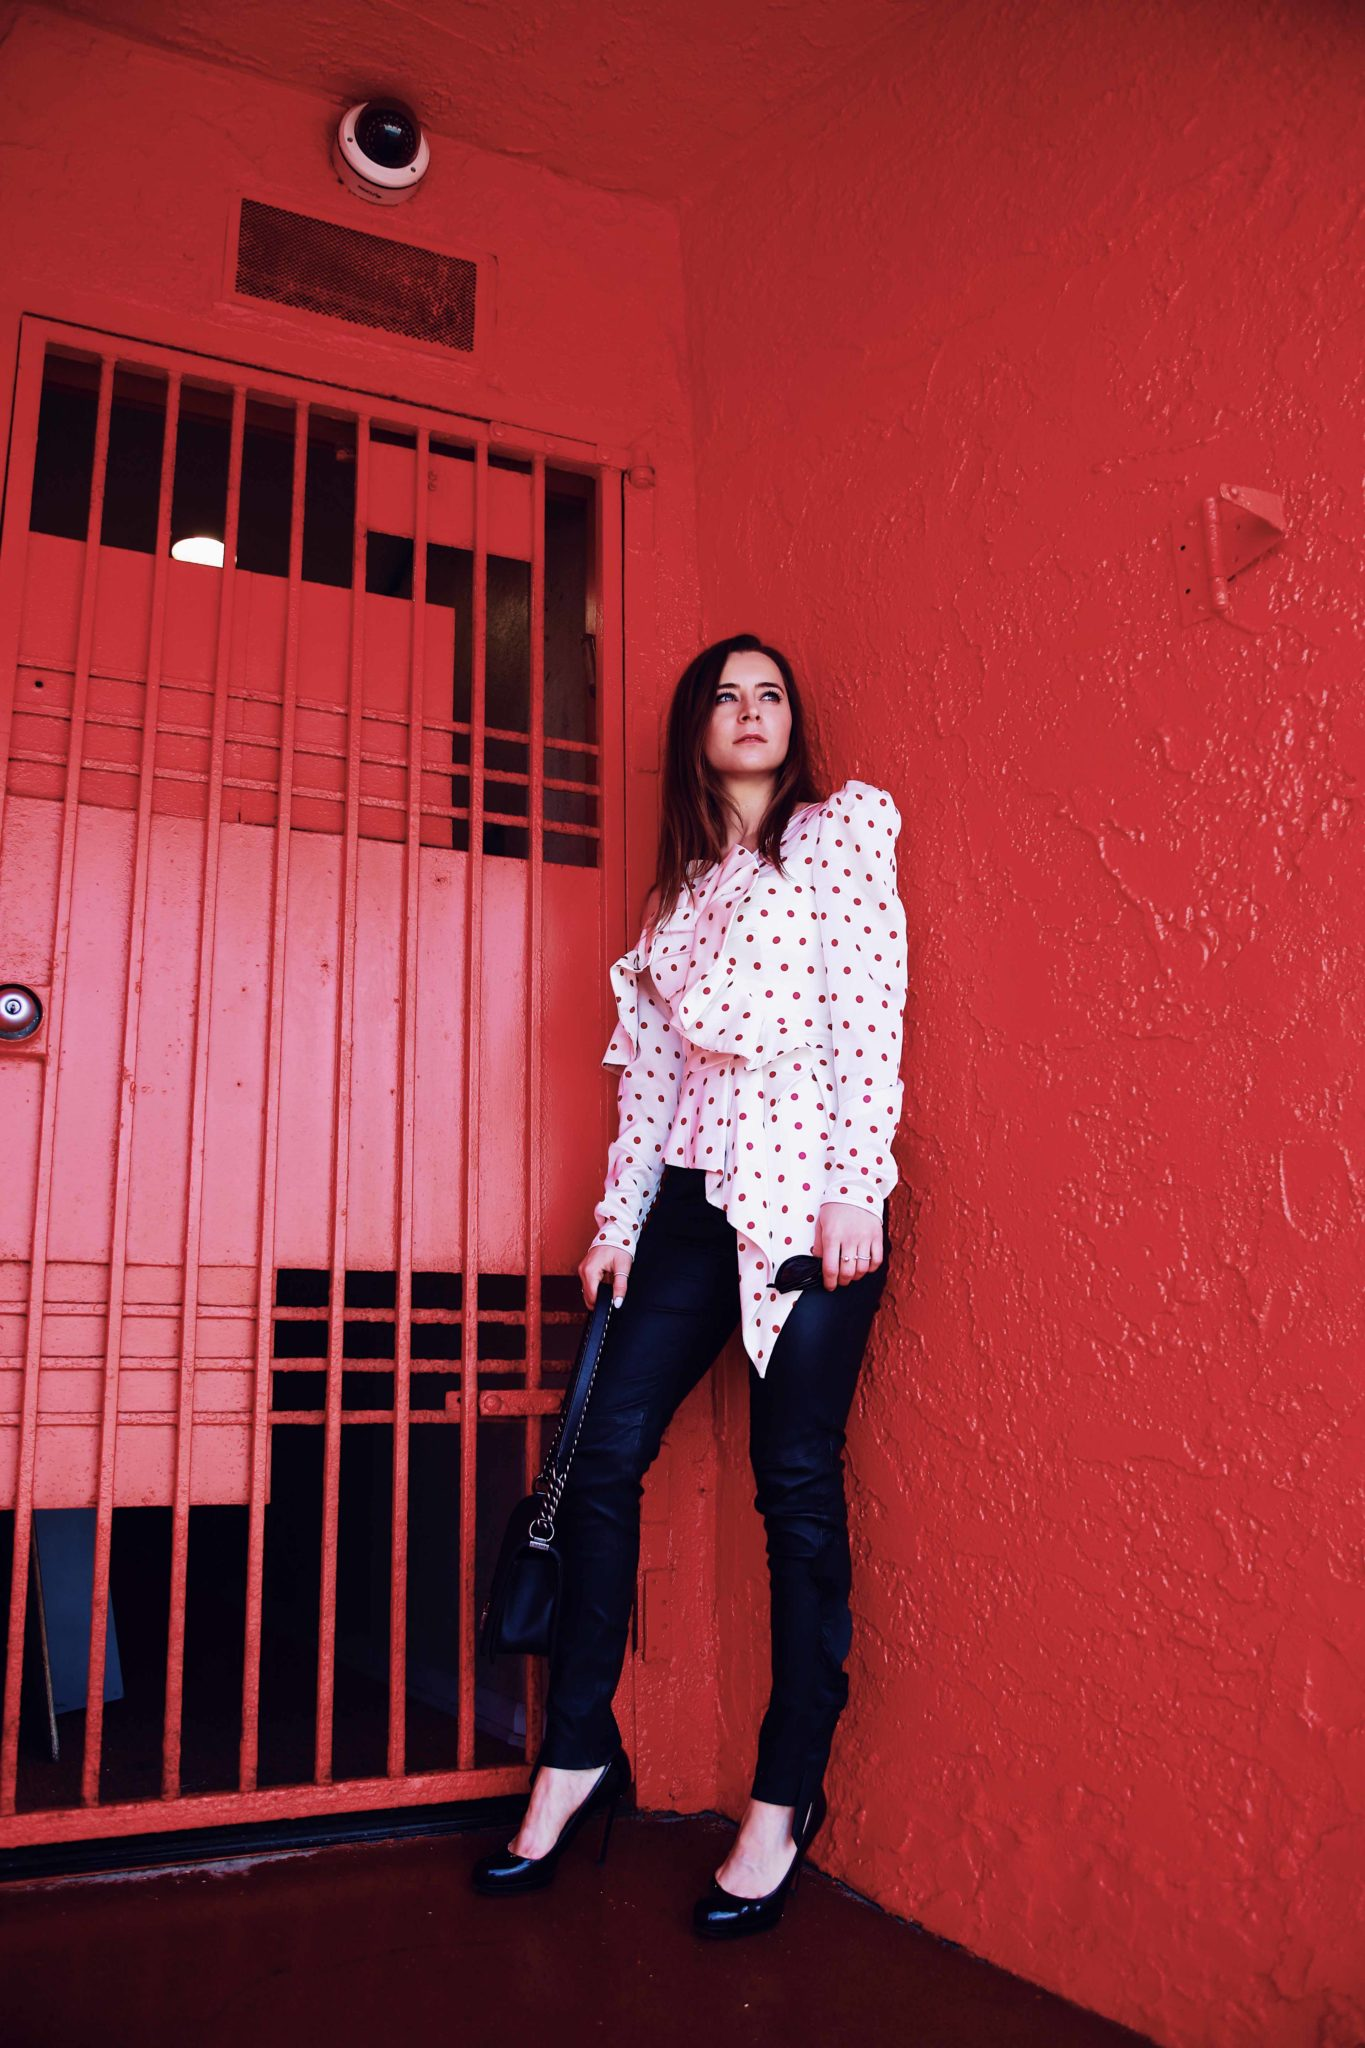 Ruffled skinny leather pants by Iro and structured polka dots blouse by Self Portrait via If Chic - More about this sophisticated and edgy look on Houseofcomil.com